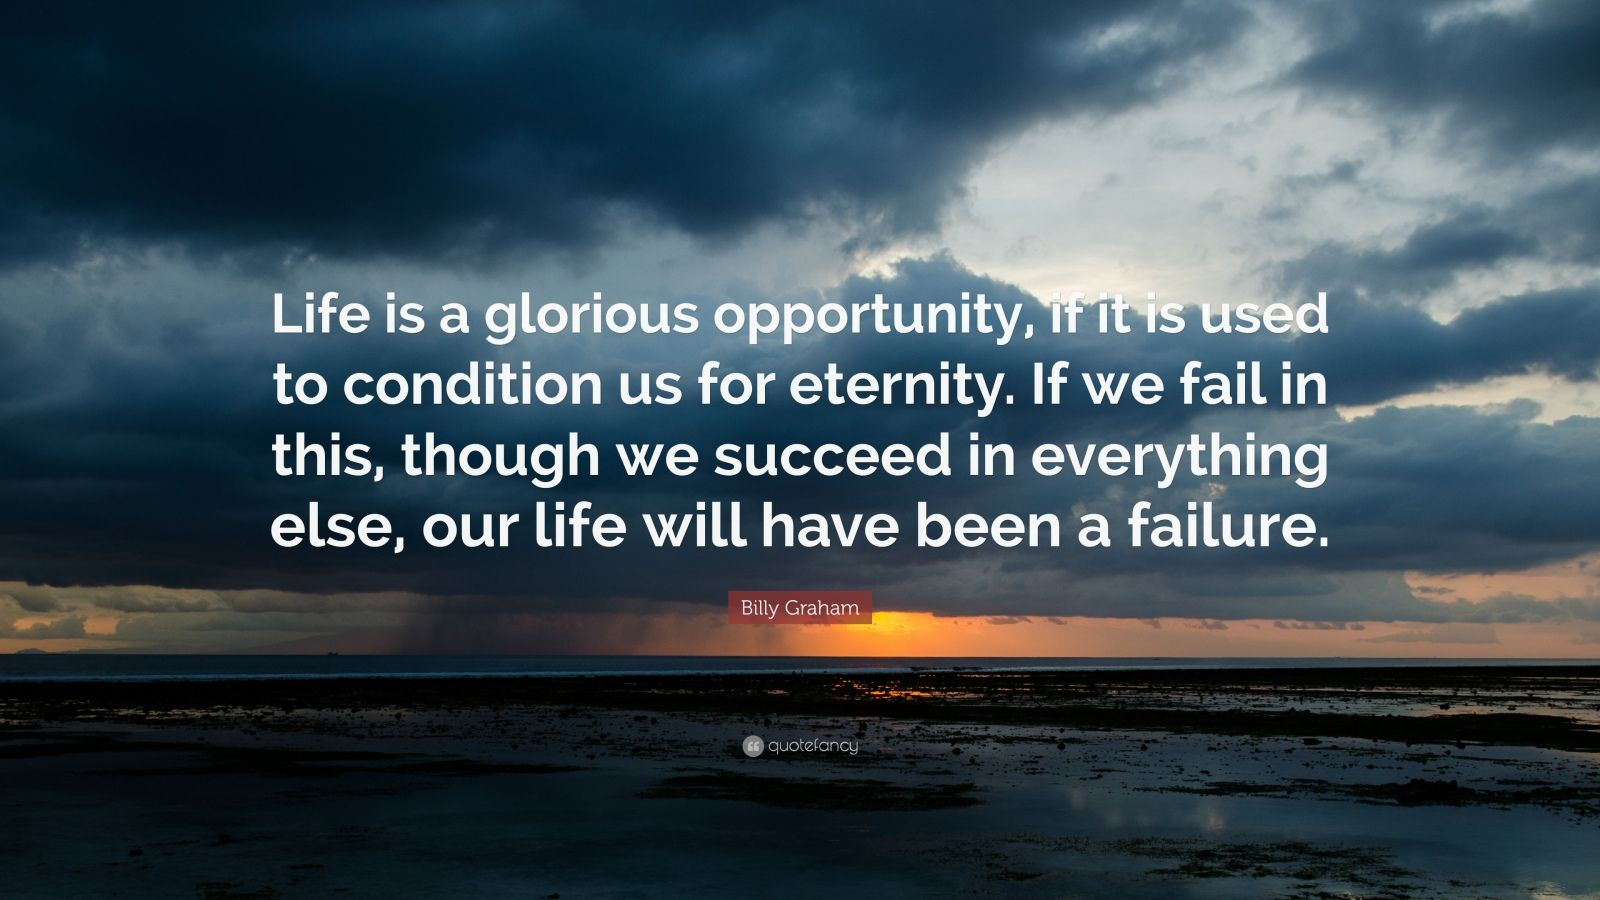 """Billy Graham Quote: """"Life is a glorious opportunity, if it is used to condition us for eternity. If we fail in this, though we succeed in everything else, our life will have been a failure."""""""